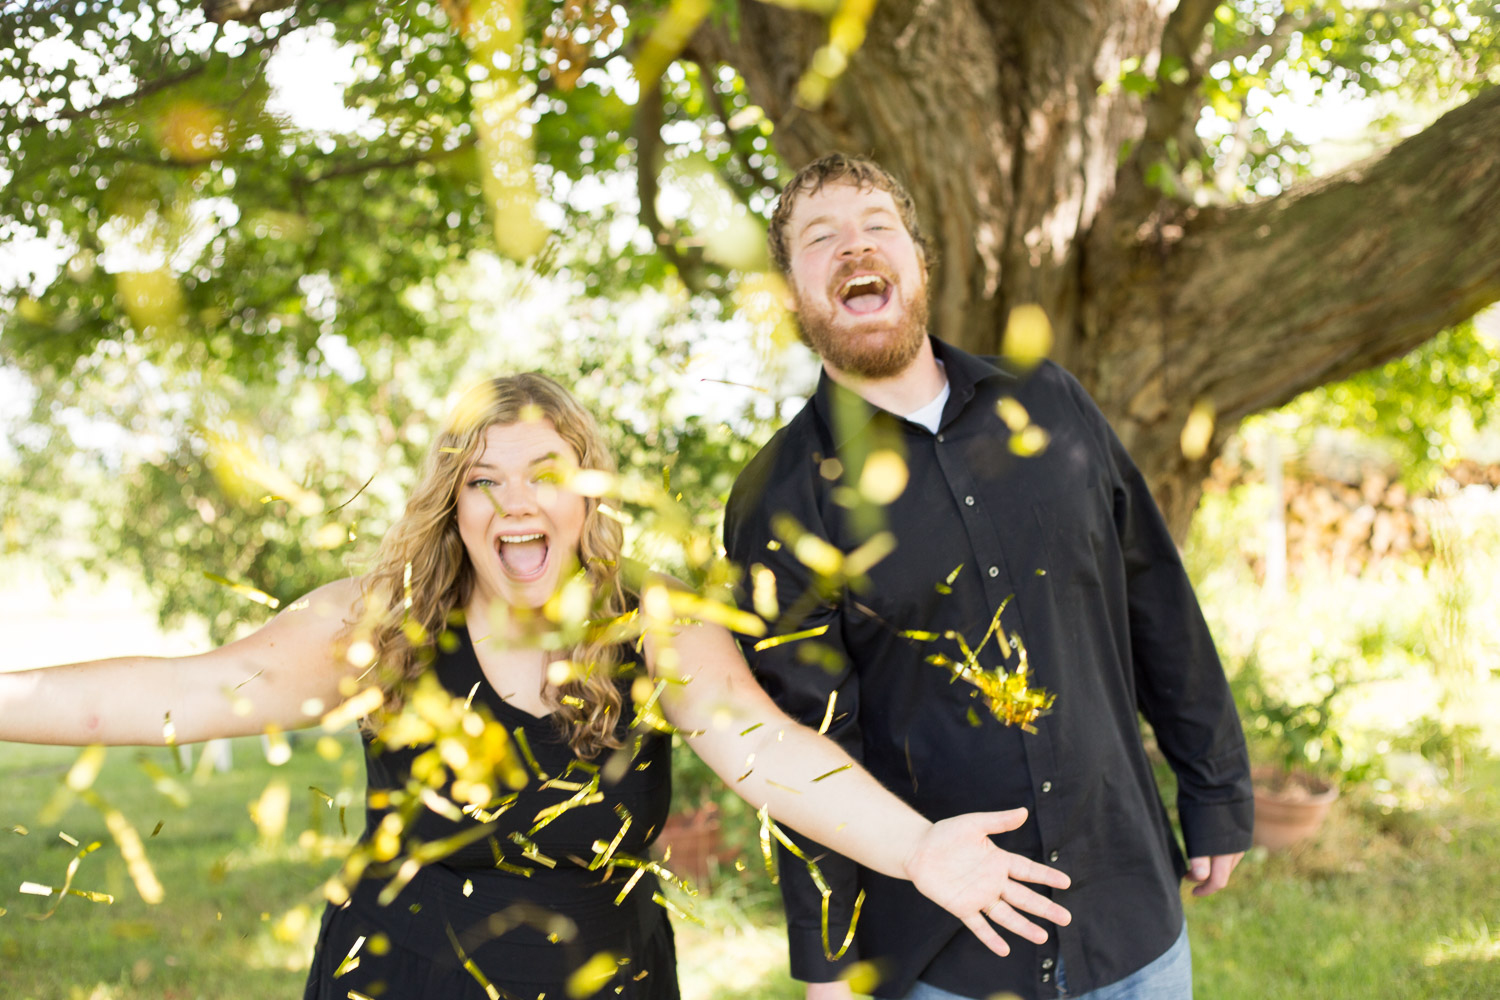 Engagement picture with gold confetti